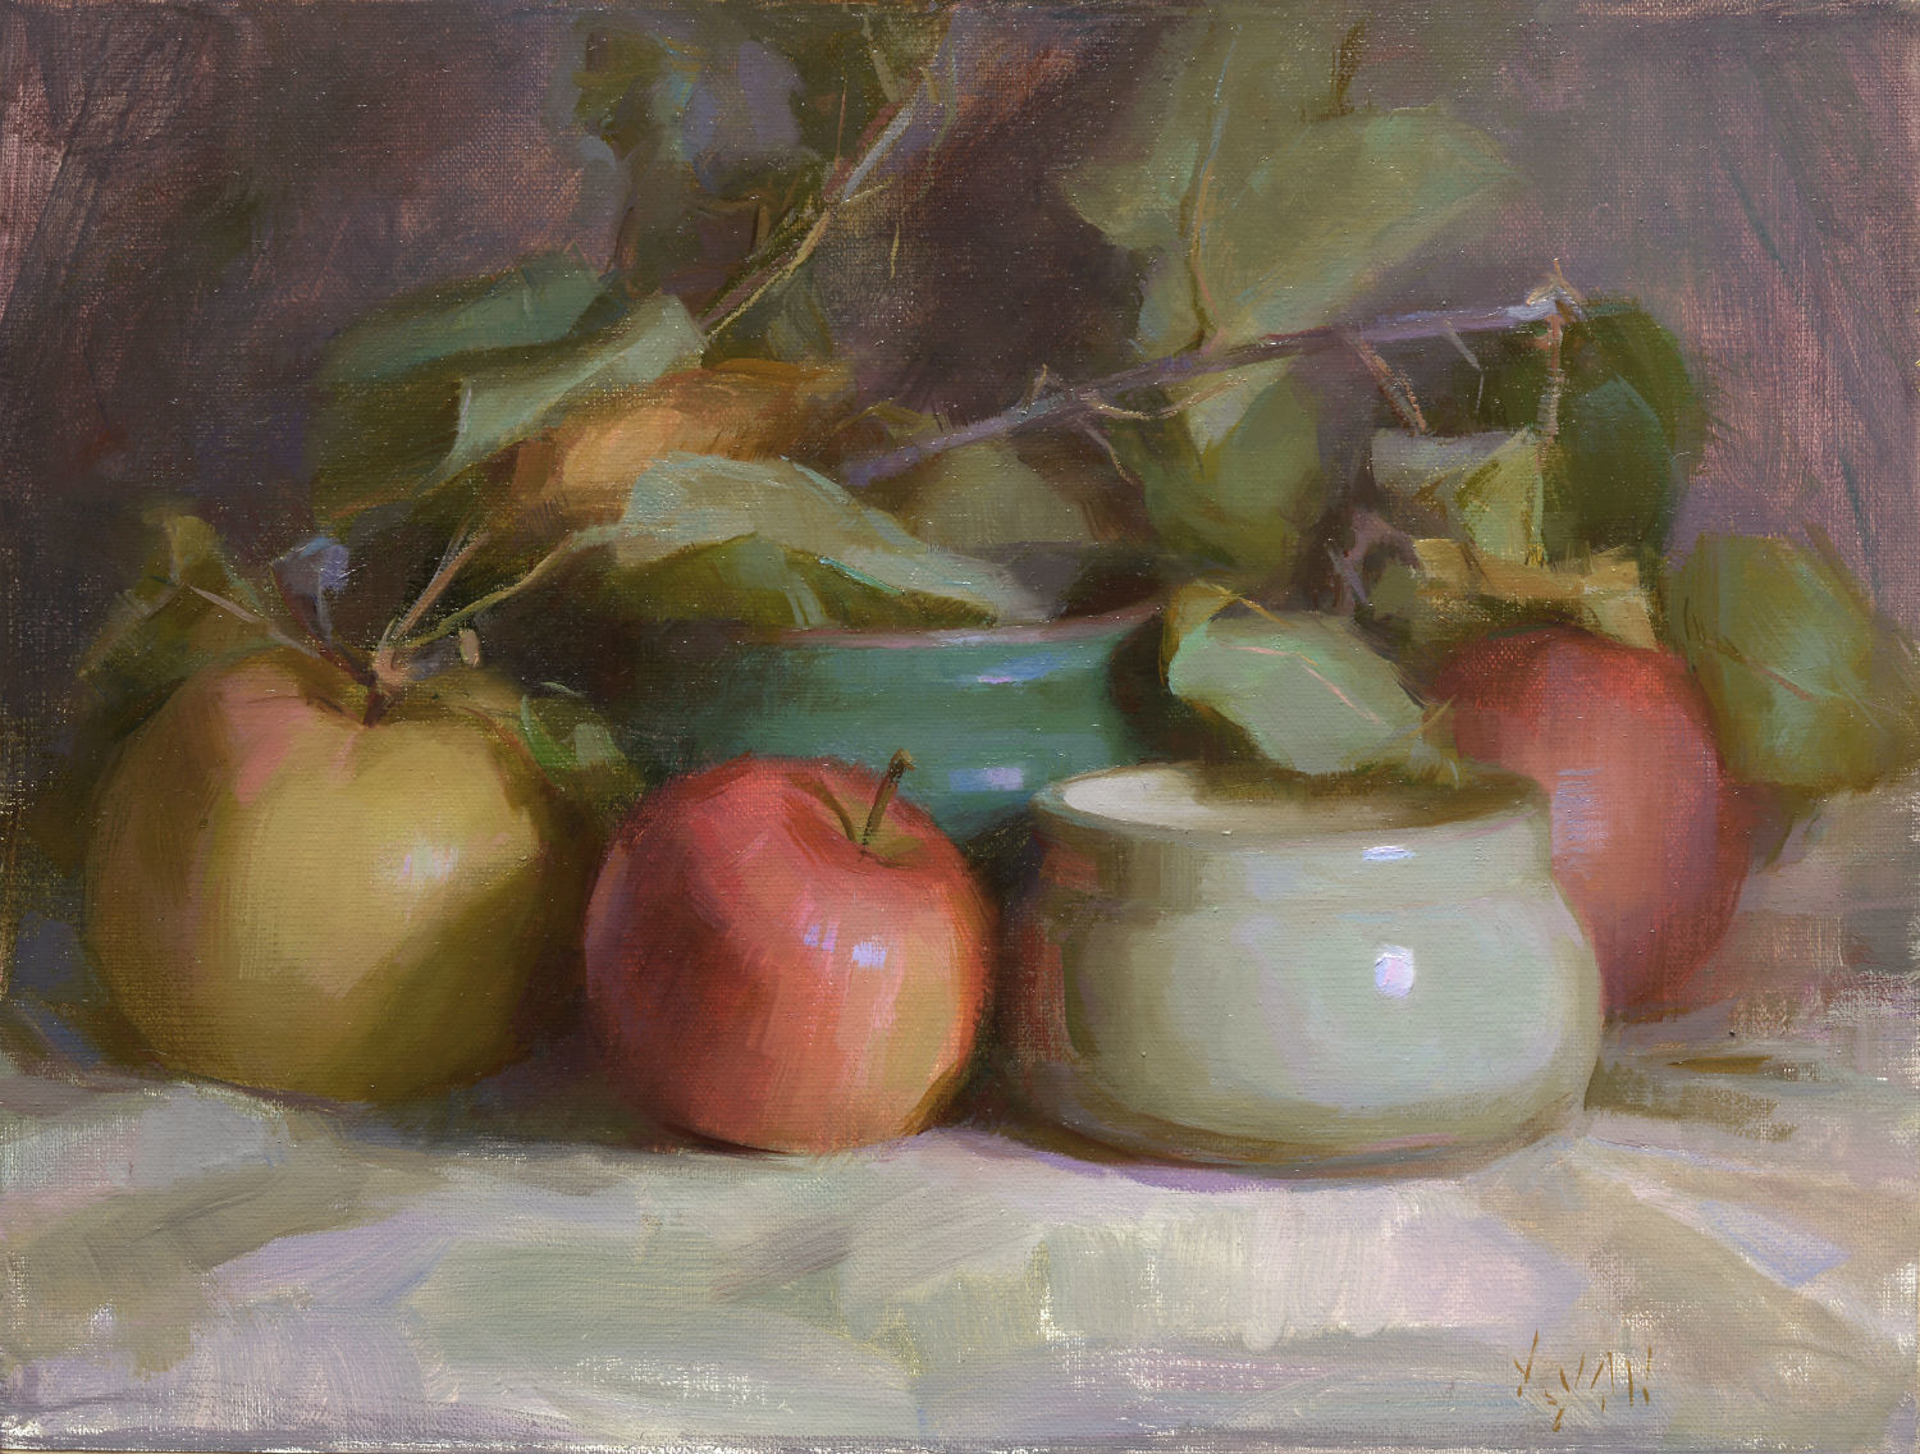 Stephanie's Apple by Susan Lyon